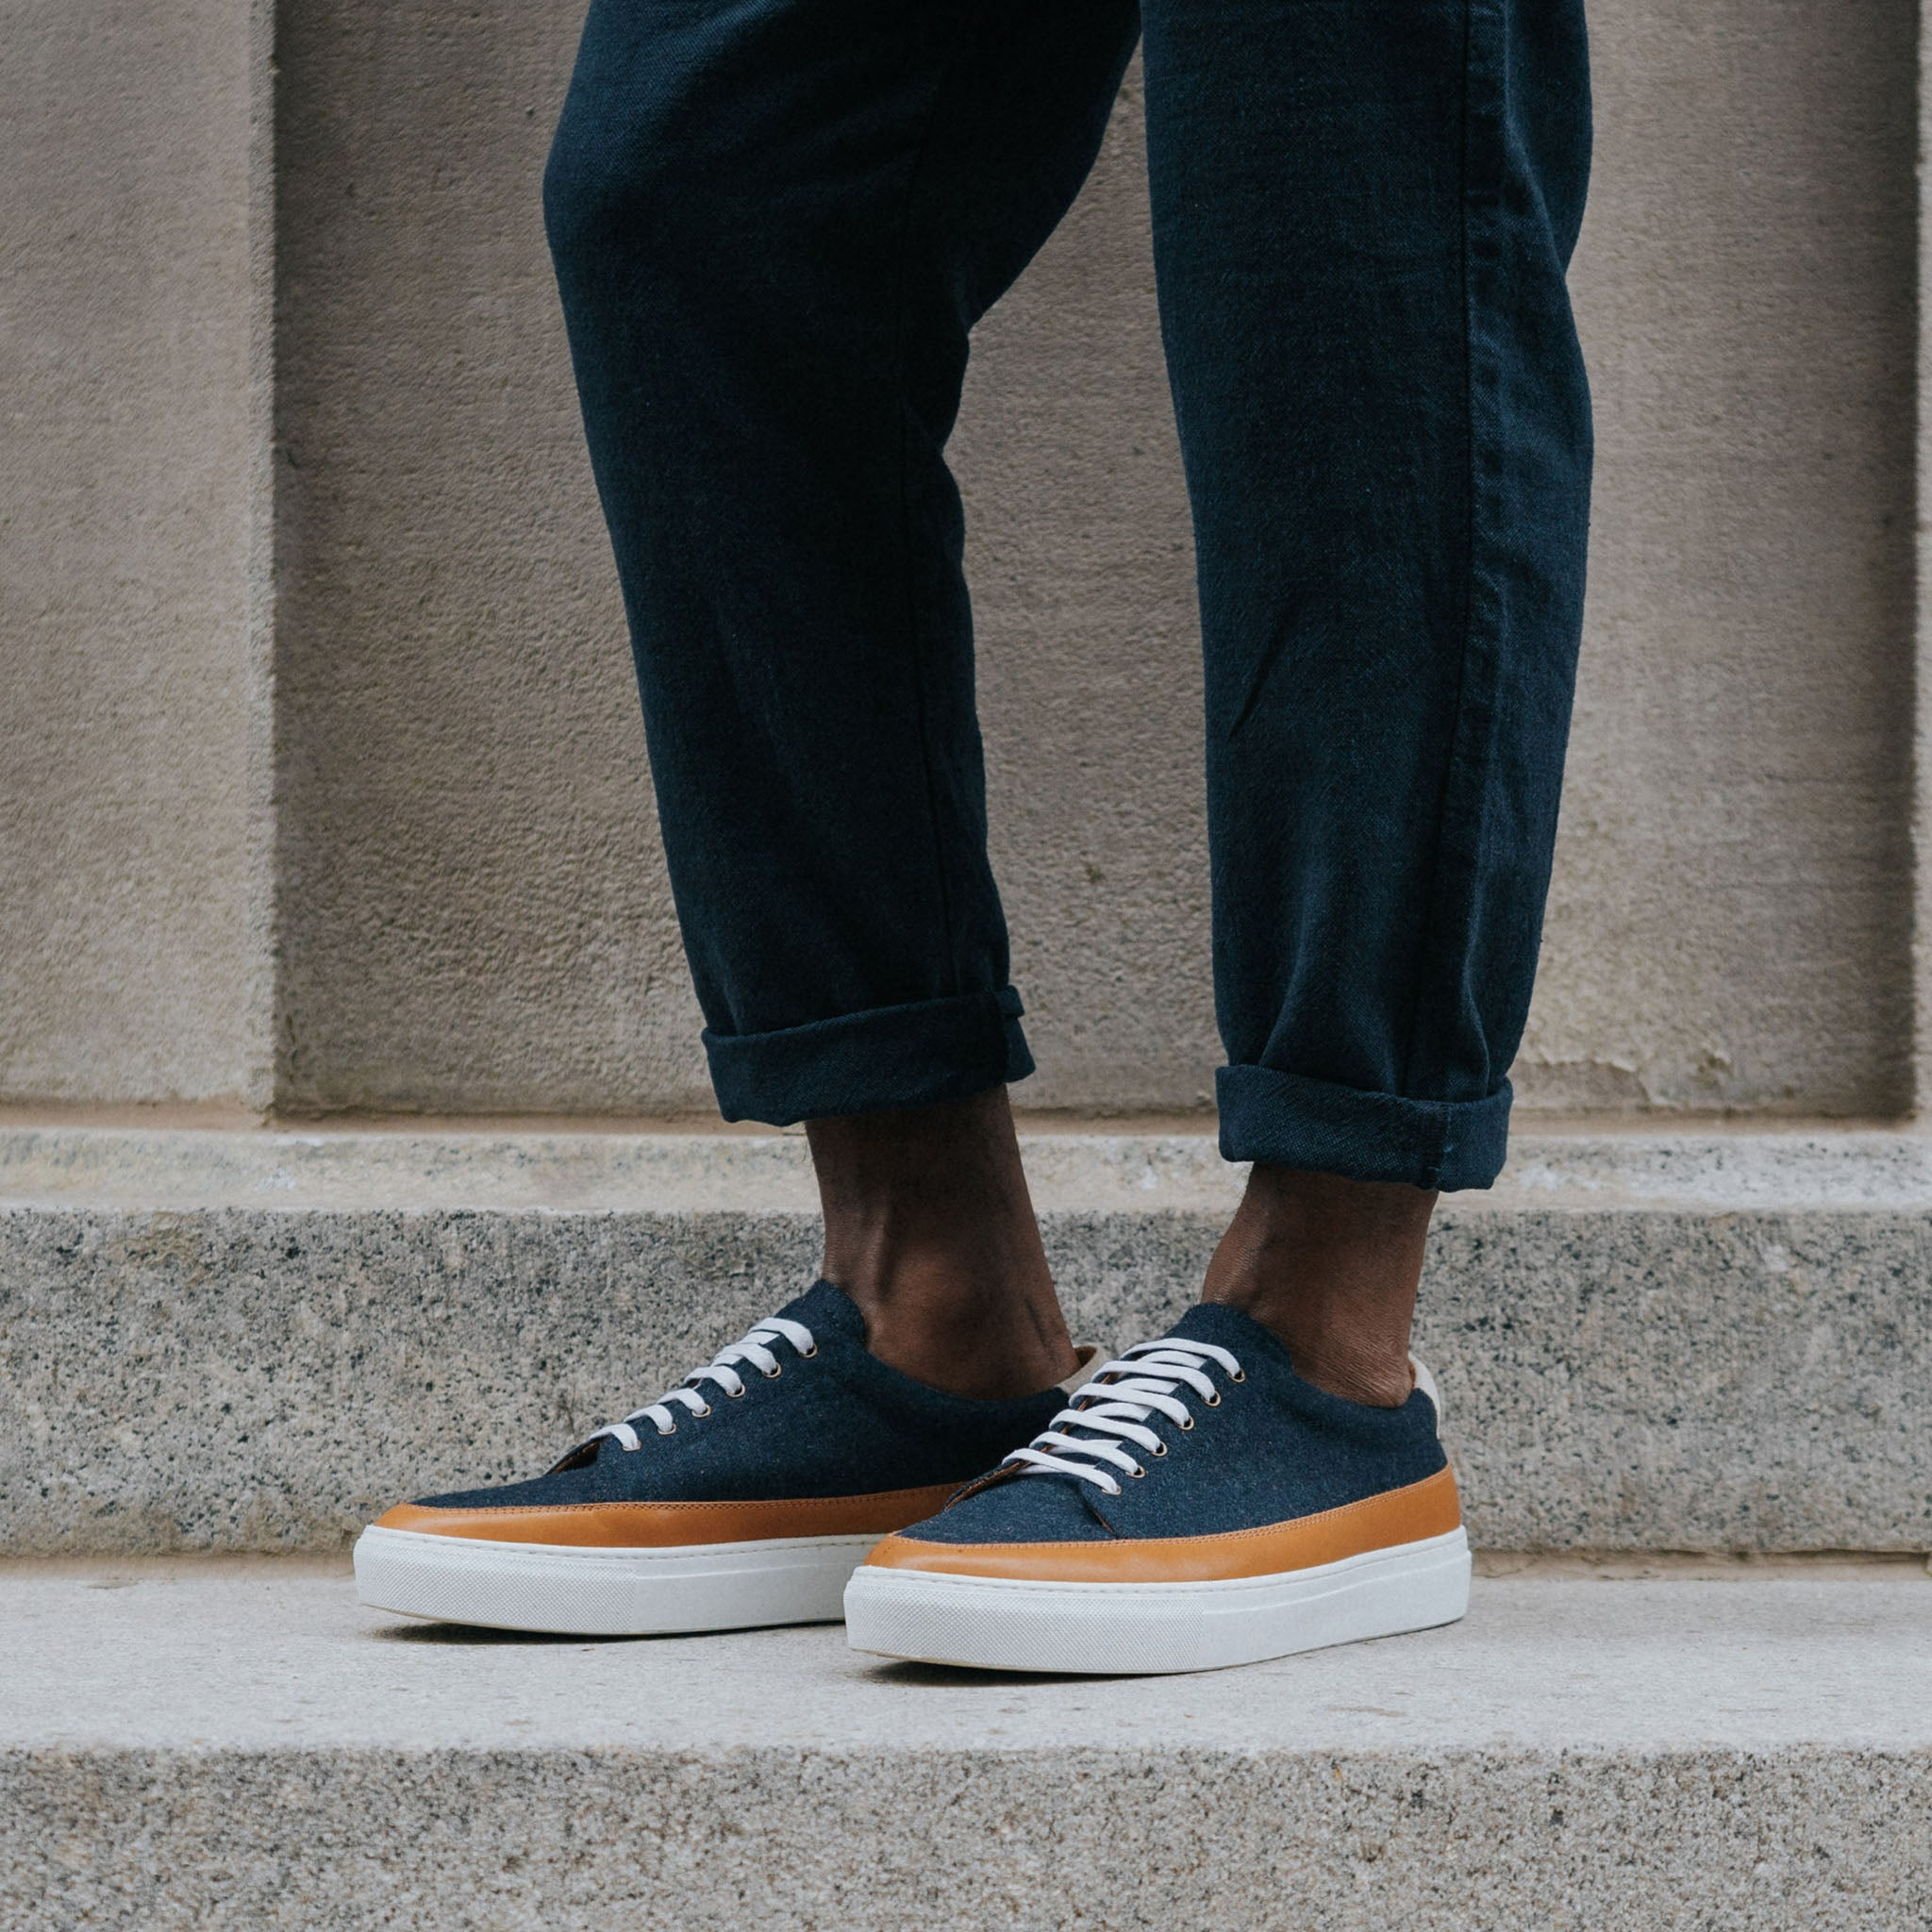 fifth ave sneaker in navy on model